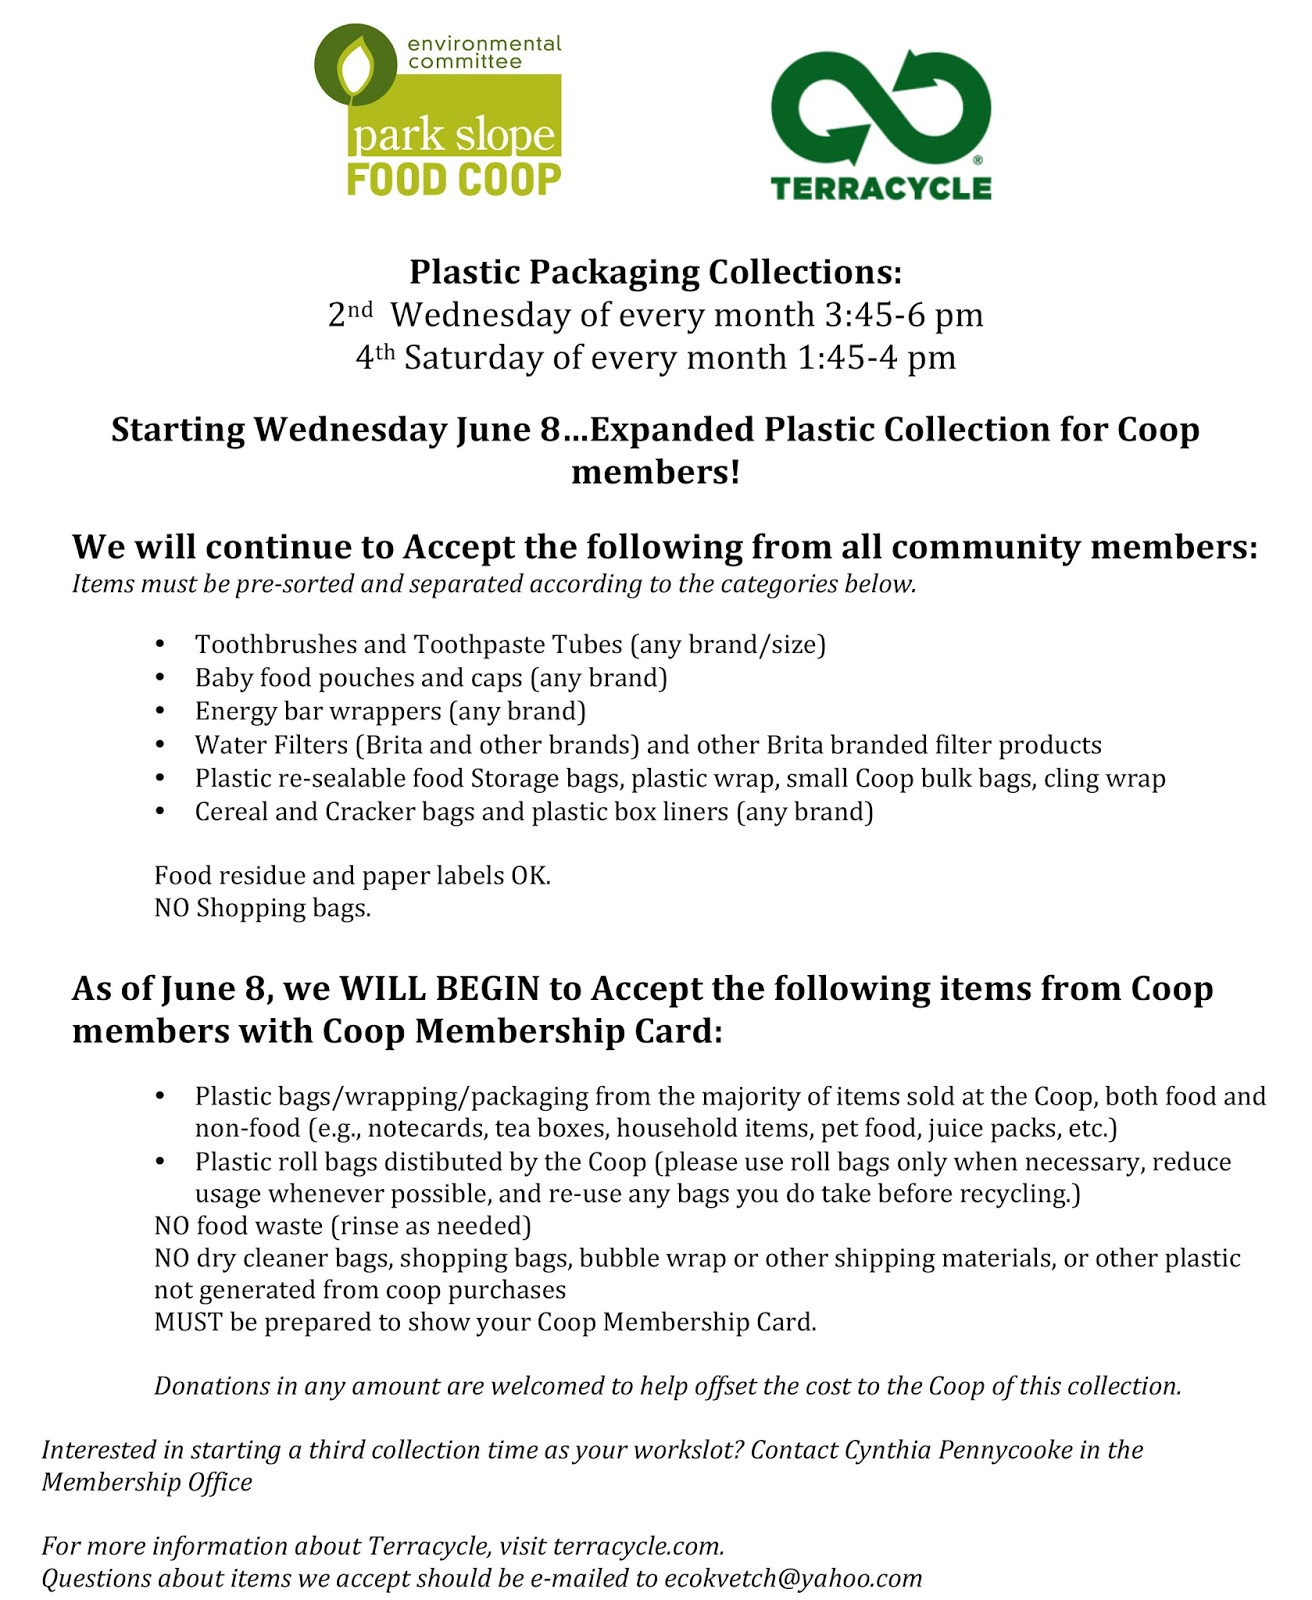 Re: Starting June 8th-Expanded Plastic Collection at Park